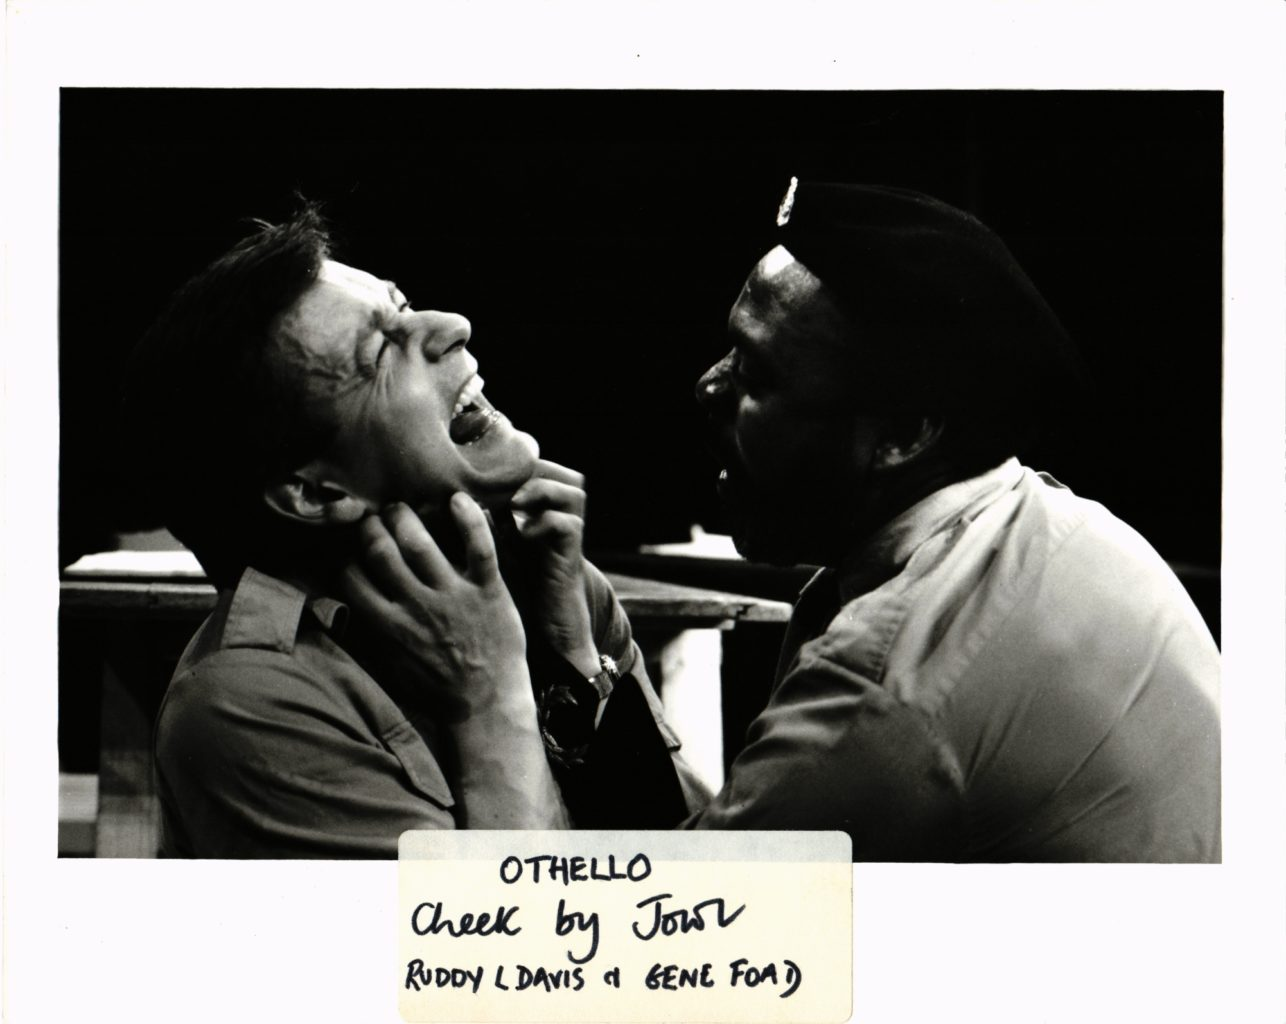 Othello black and white rehearsal photography, 1982-1983 (copyright John Beveridge)